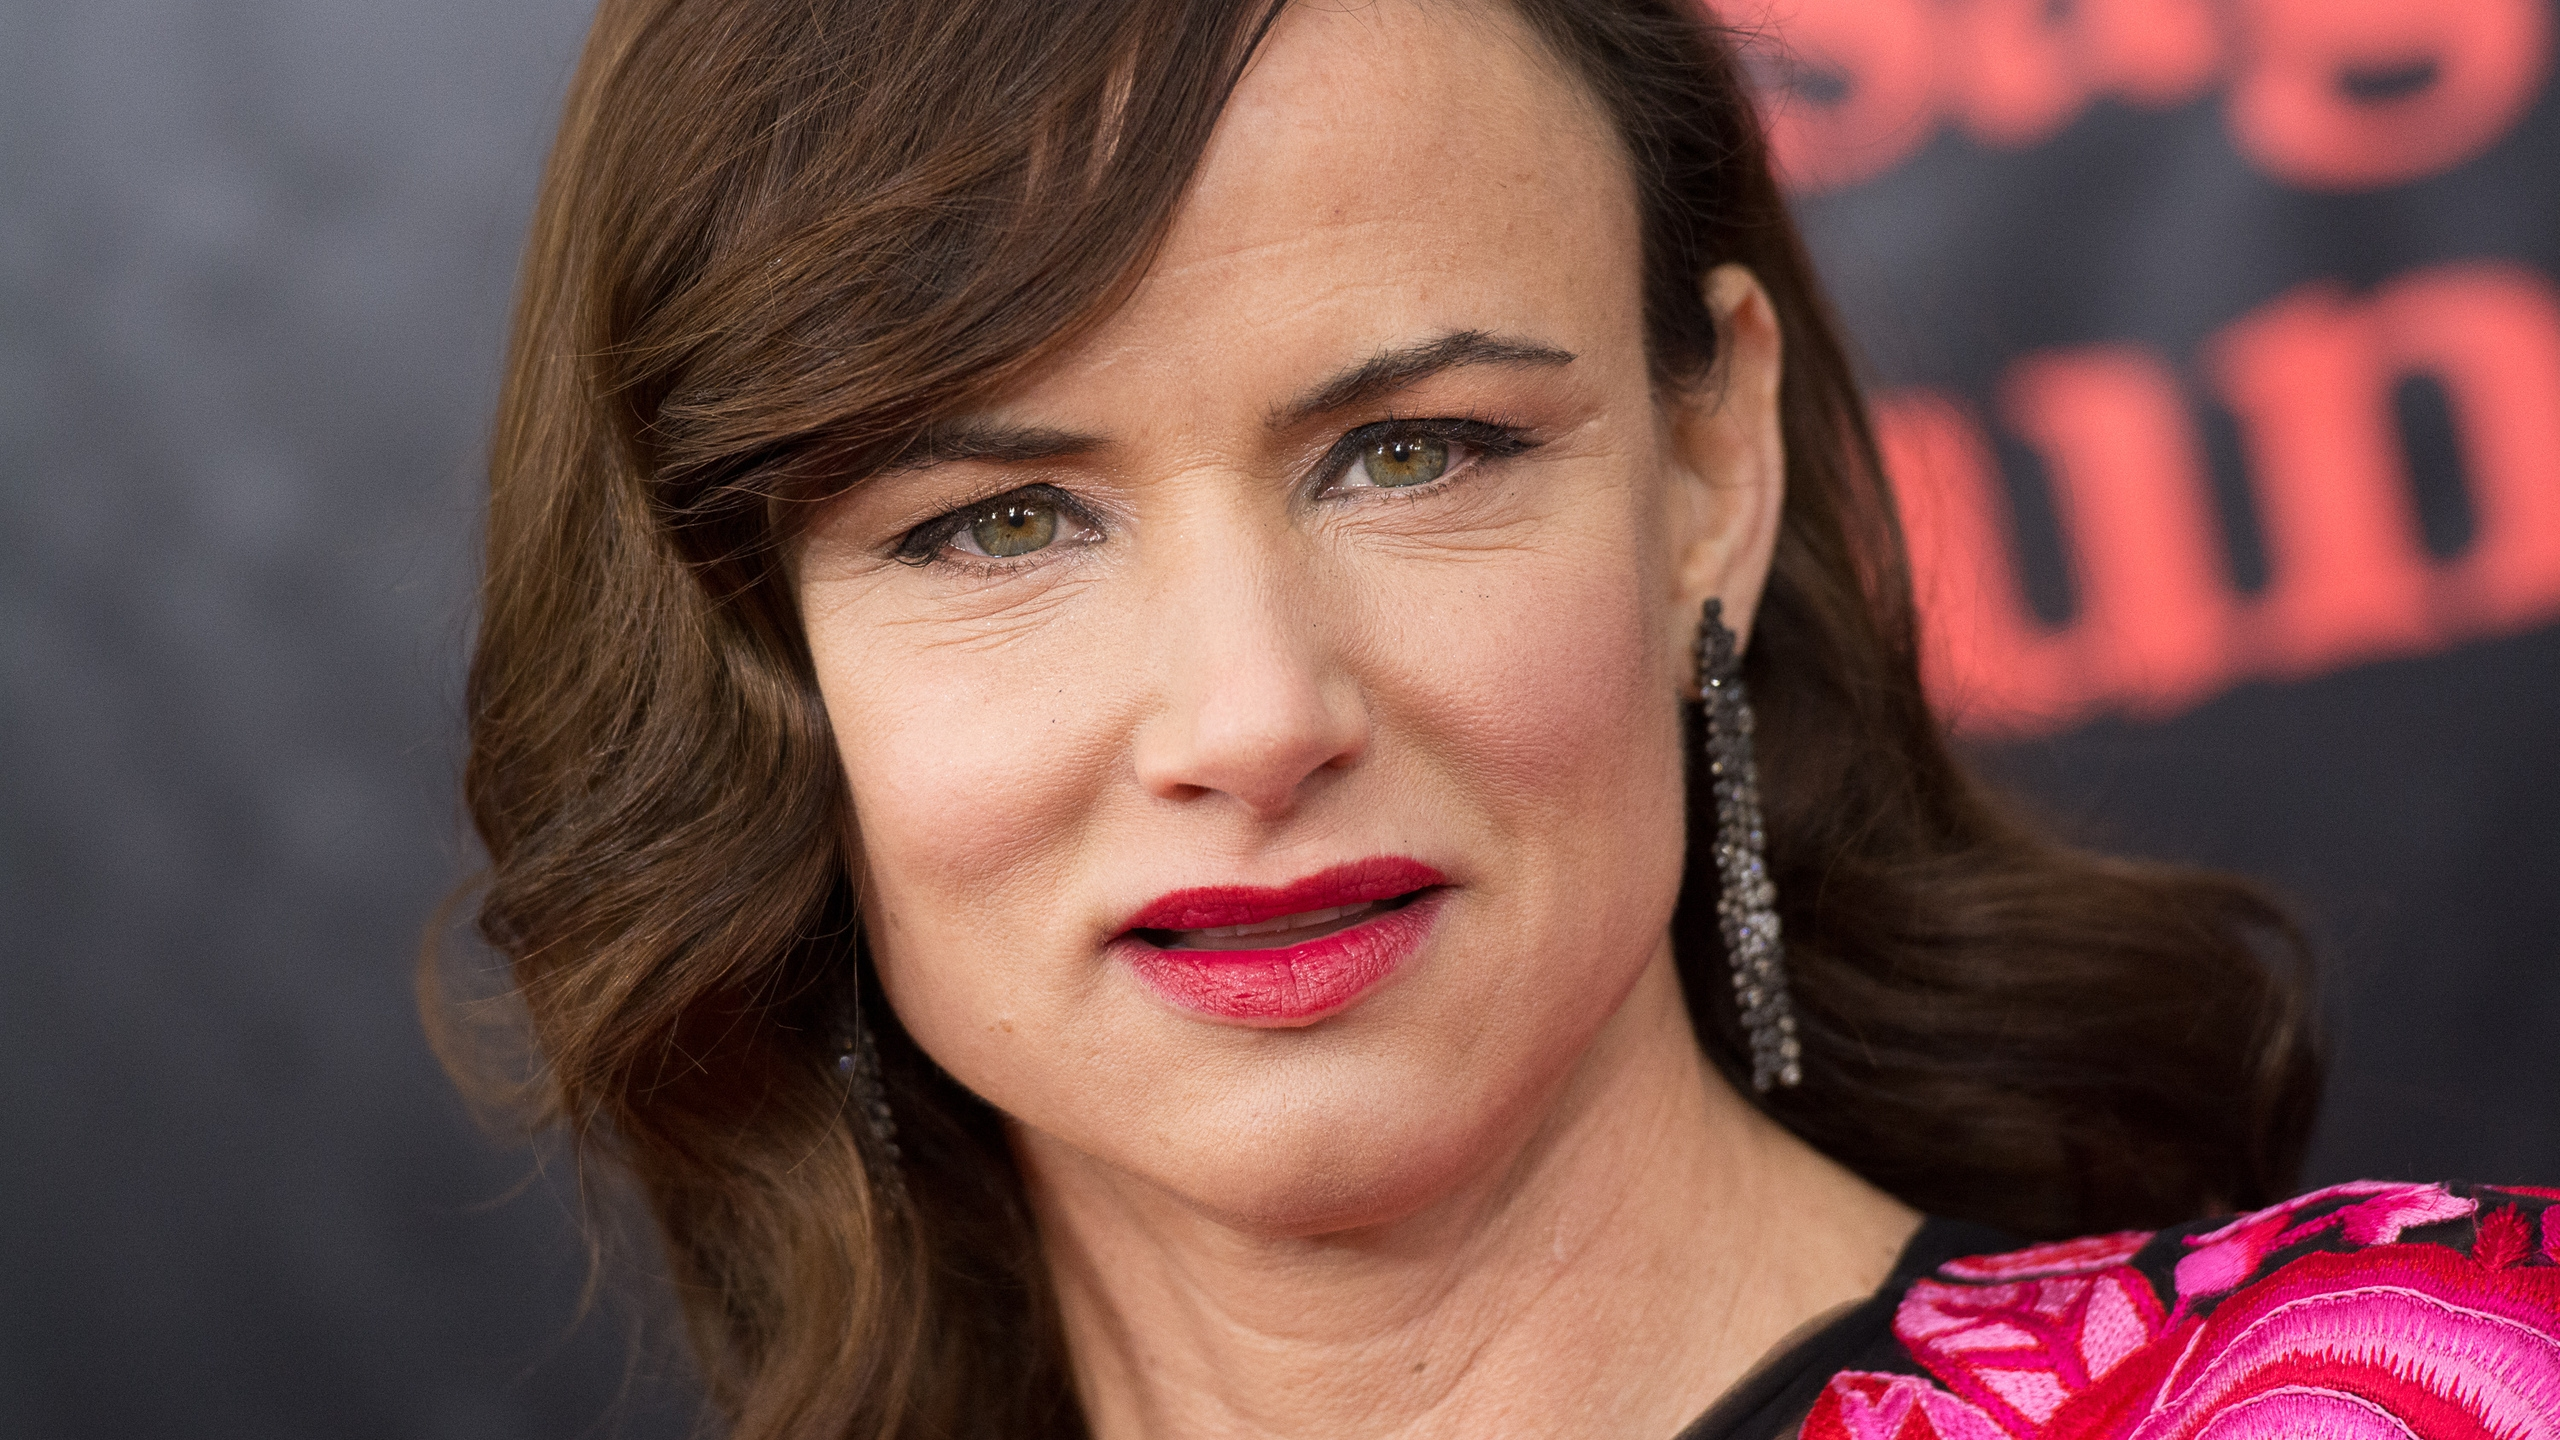 Beautiful Juliette Lewis for 2560x1440 HDTV resolution